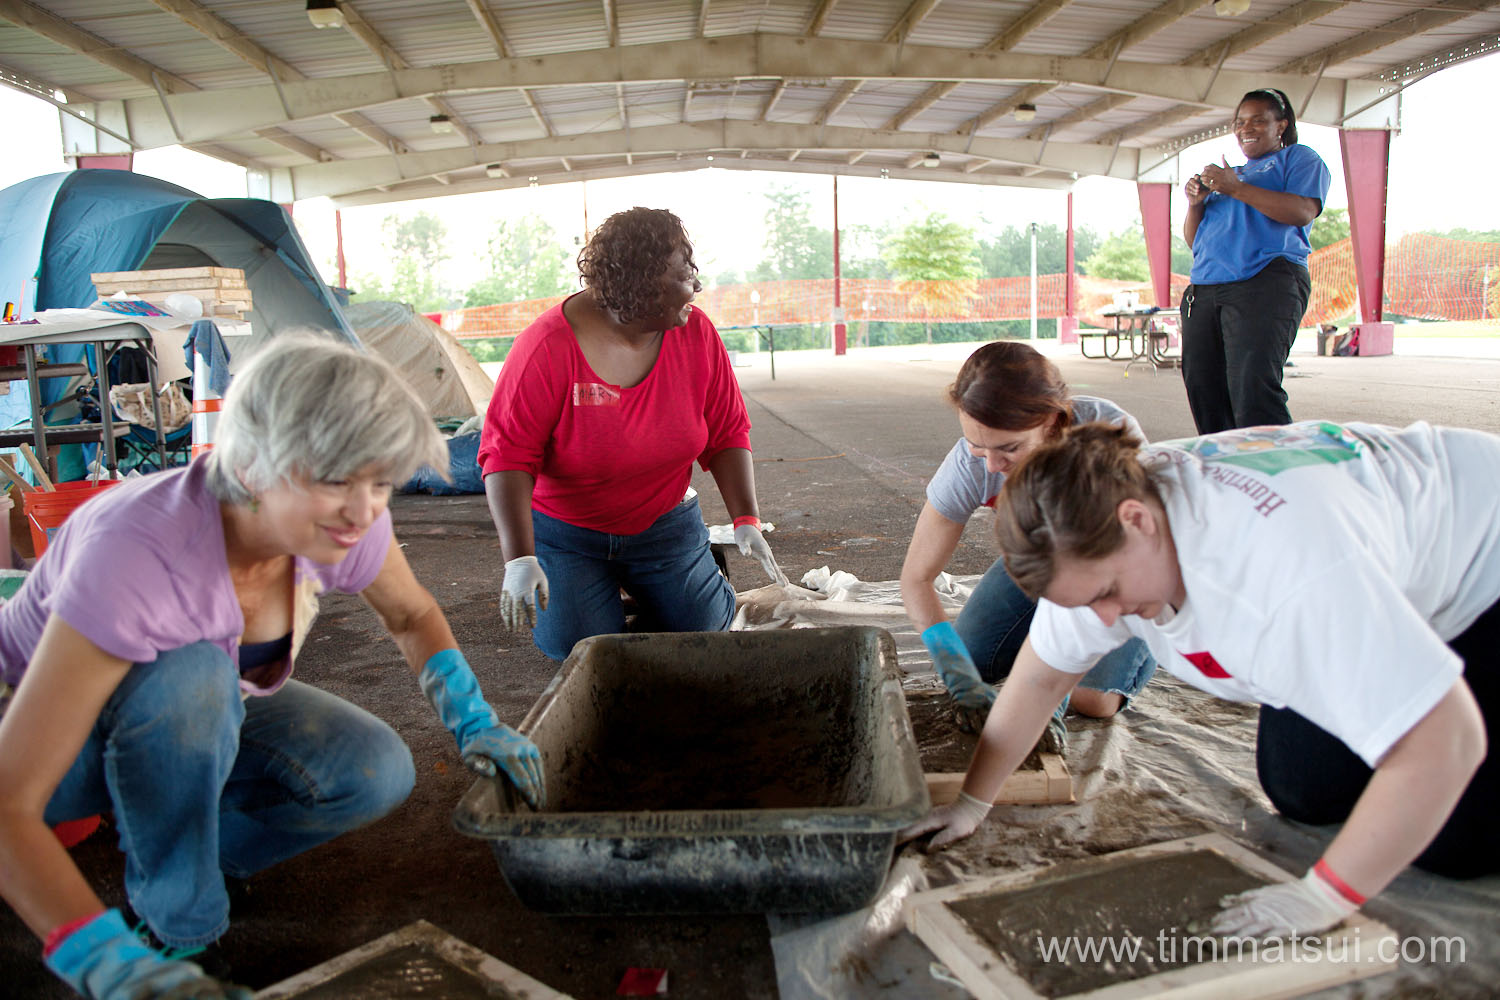 Volunteers build the Alberta Gathering Place in Tuscaloosa, Alabama, with the help of Seattle's Pomegranate Center and Tully's Coffee.